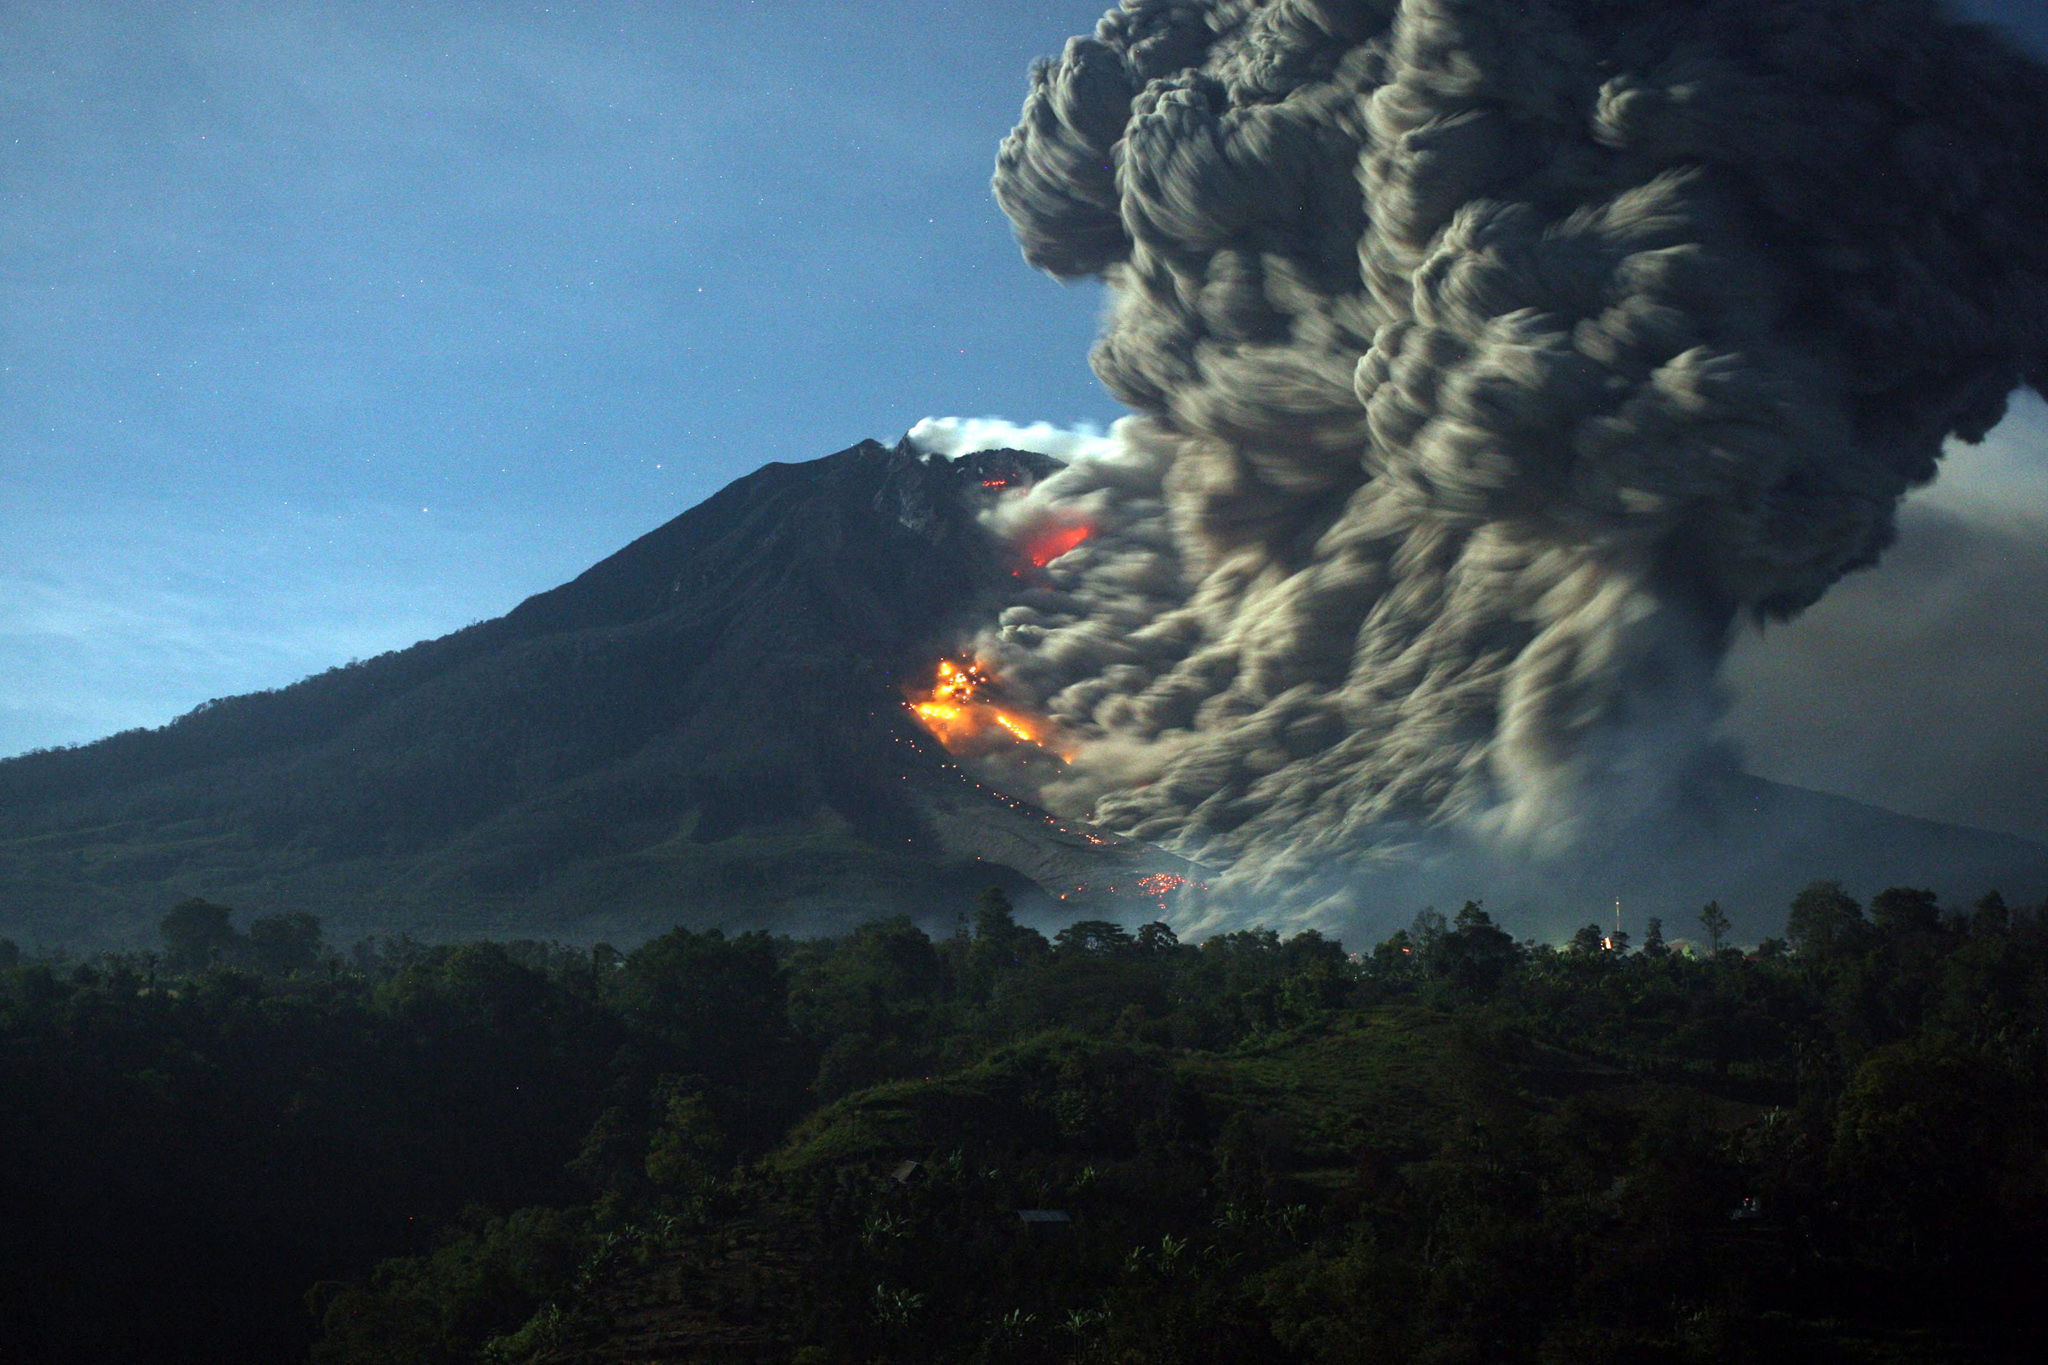 Mount Sinabung eruption...epa04437808 Mount Sinabung spews hot lava and volcanic ash as it is seen from Karo, North Sumatra, Indonesia, 09 October 2014. Mount Sinabung erupted in the last four days, forcing hundreds of people to flee their home. The 2,460-metre volcano had been dormant for 400 years before it erupted in August 2010.  EPA/DEDY SAHPUTRA